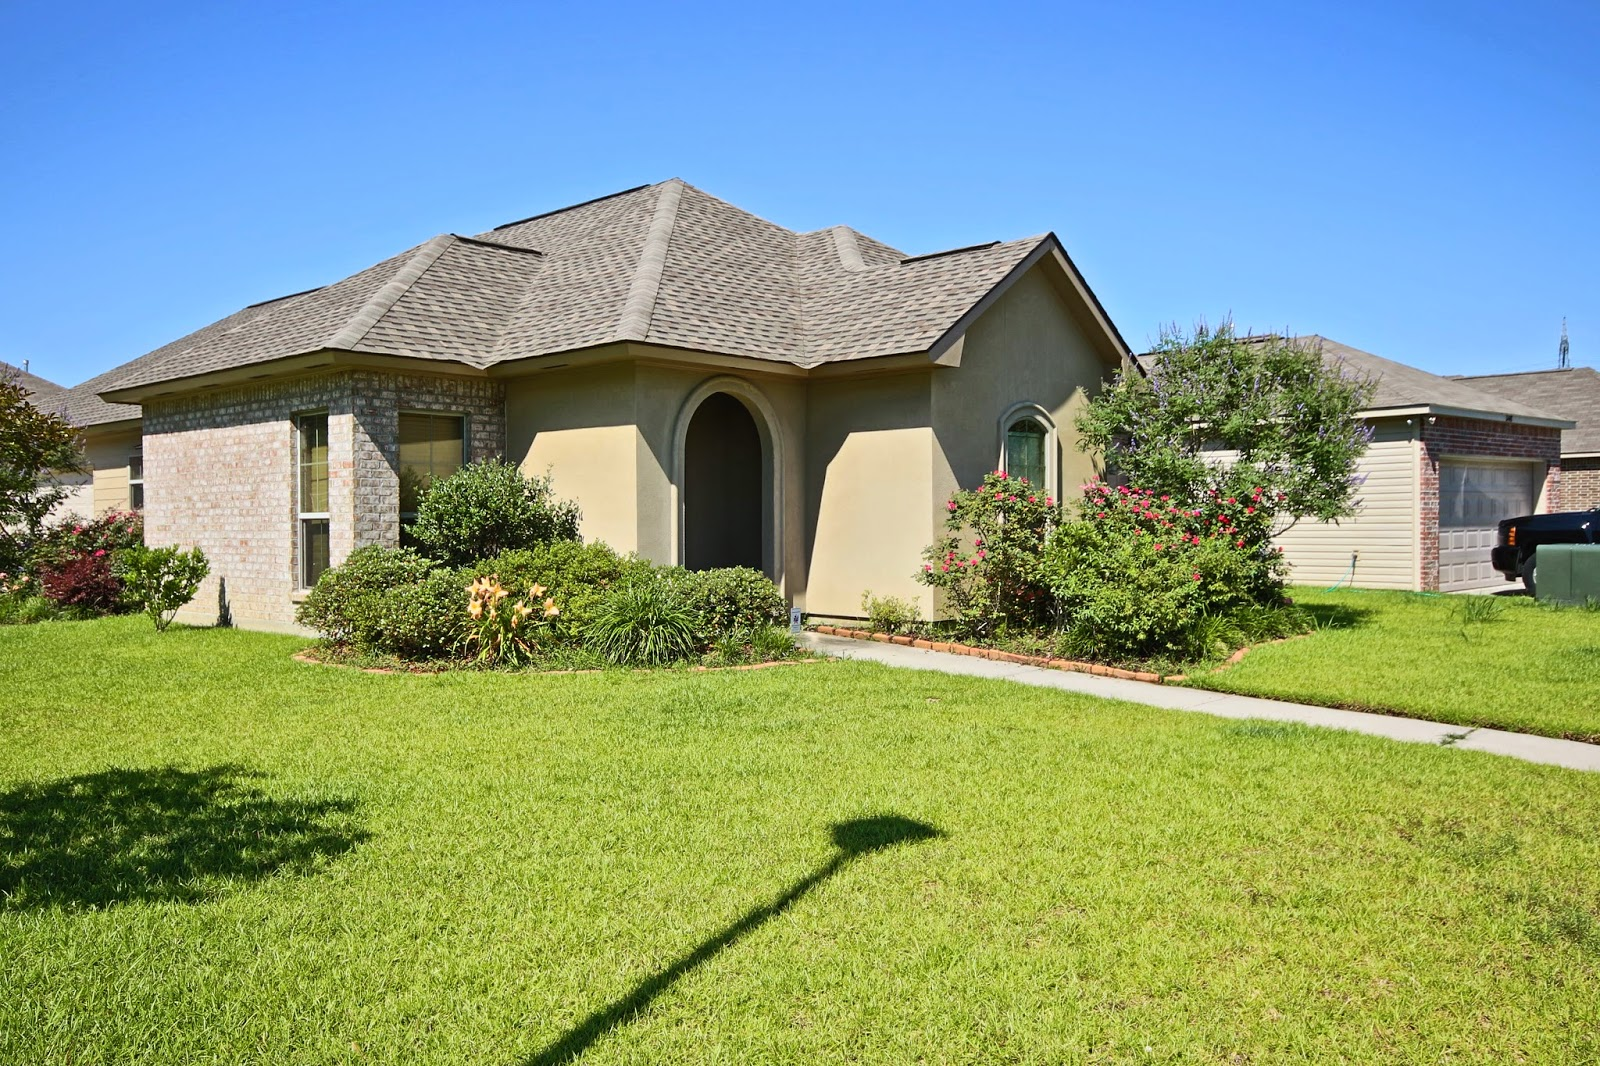 http://www.batonrougerealestatedeals.com/listing/mlsid/393/propertyid/B1408114/syndicated/1/